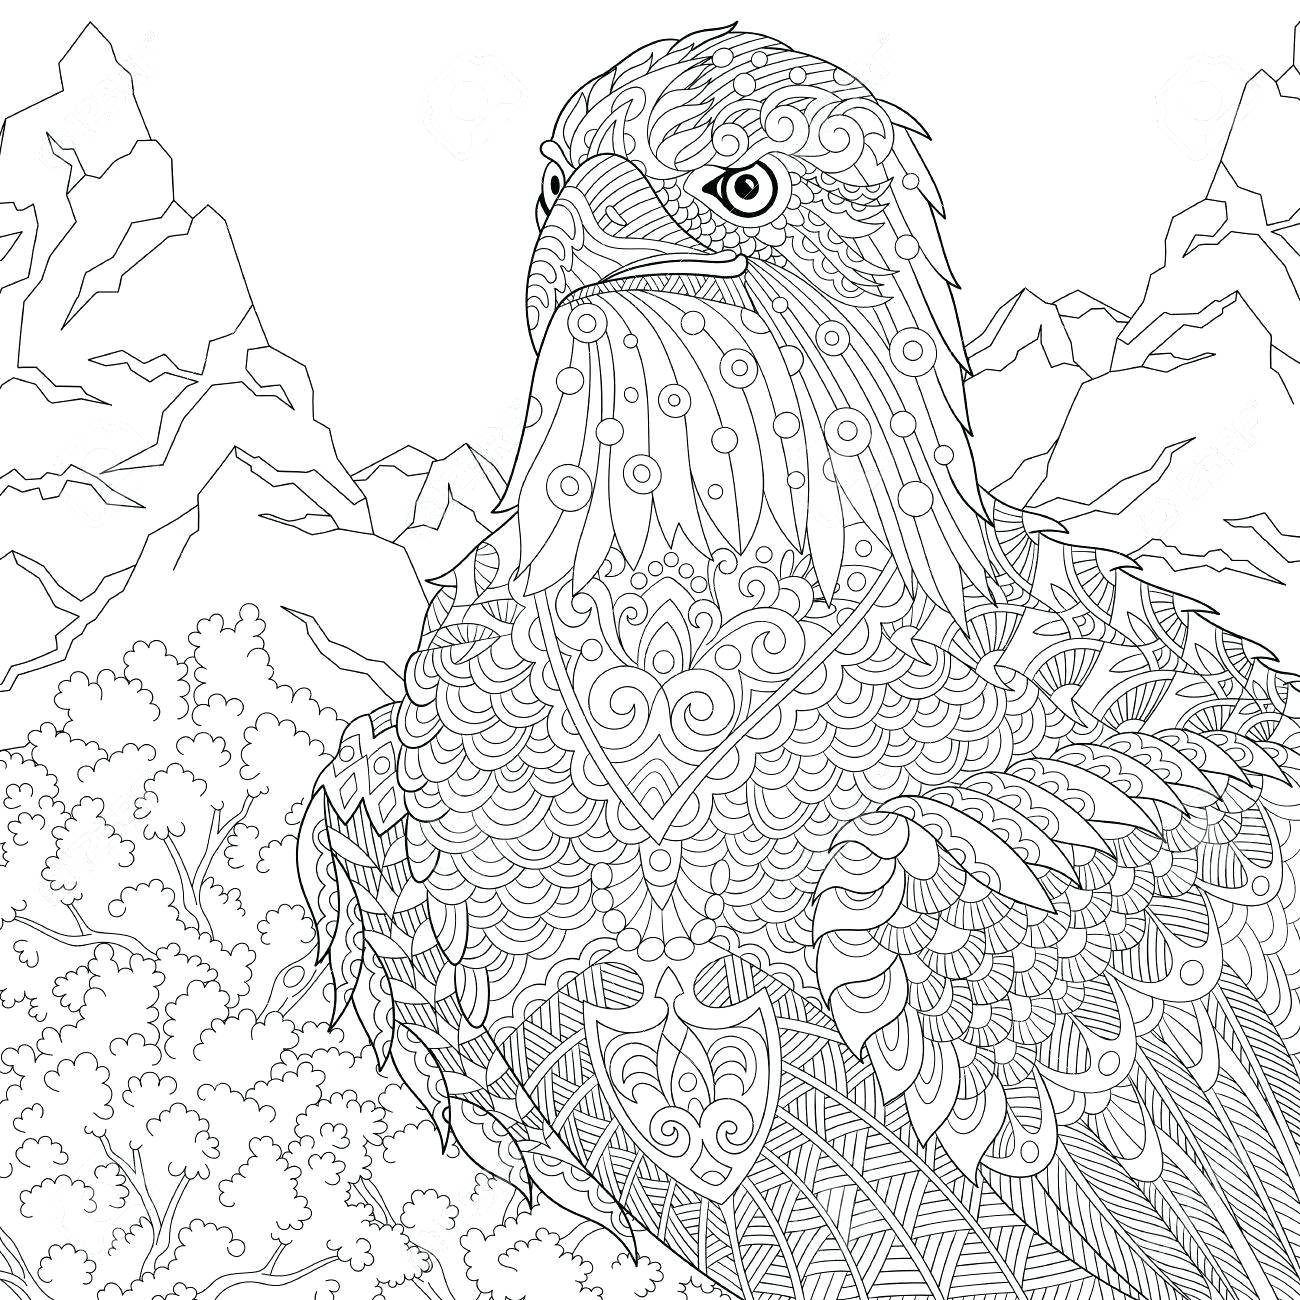 1300x1300 Coloring American Symbols Coloring Pages State Flower Page Native